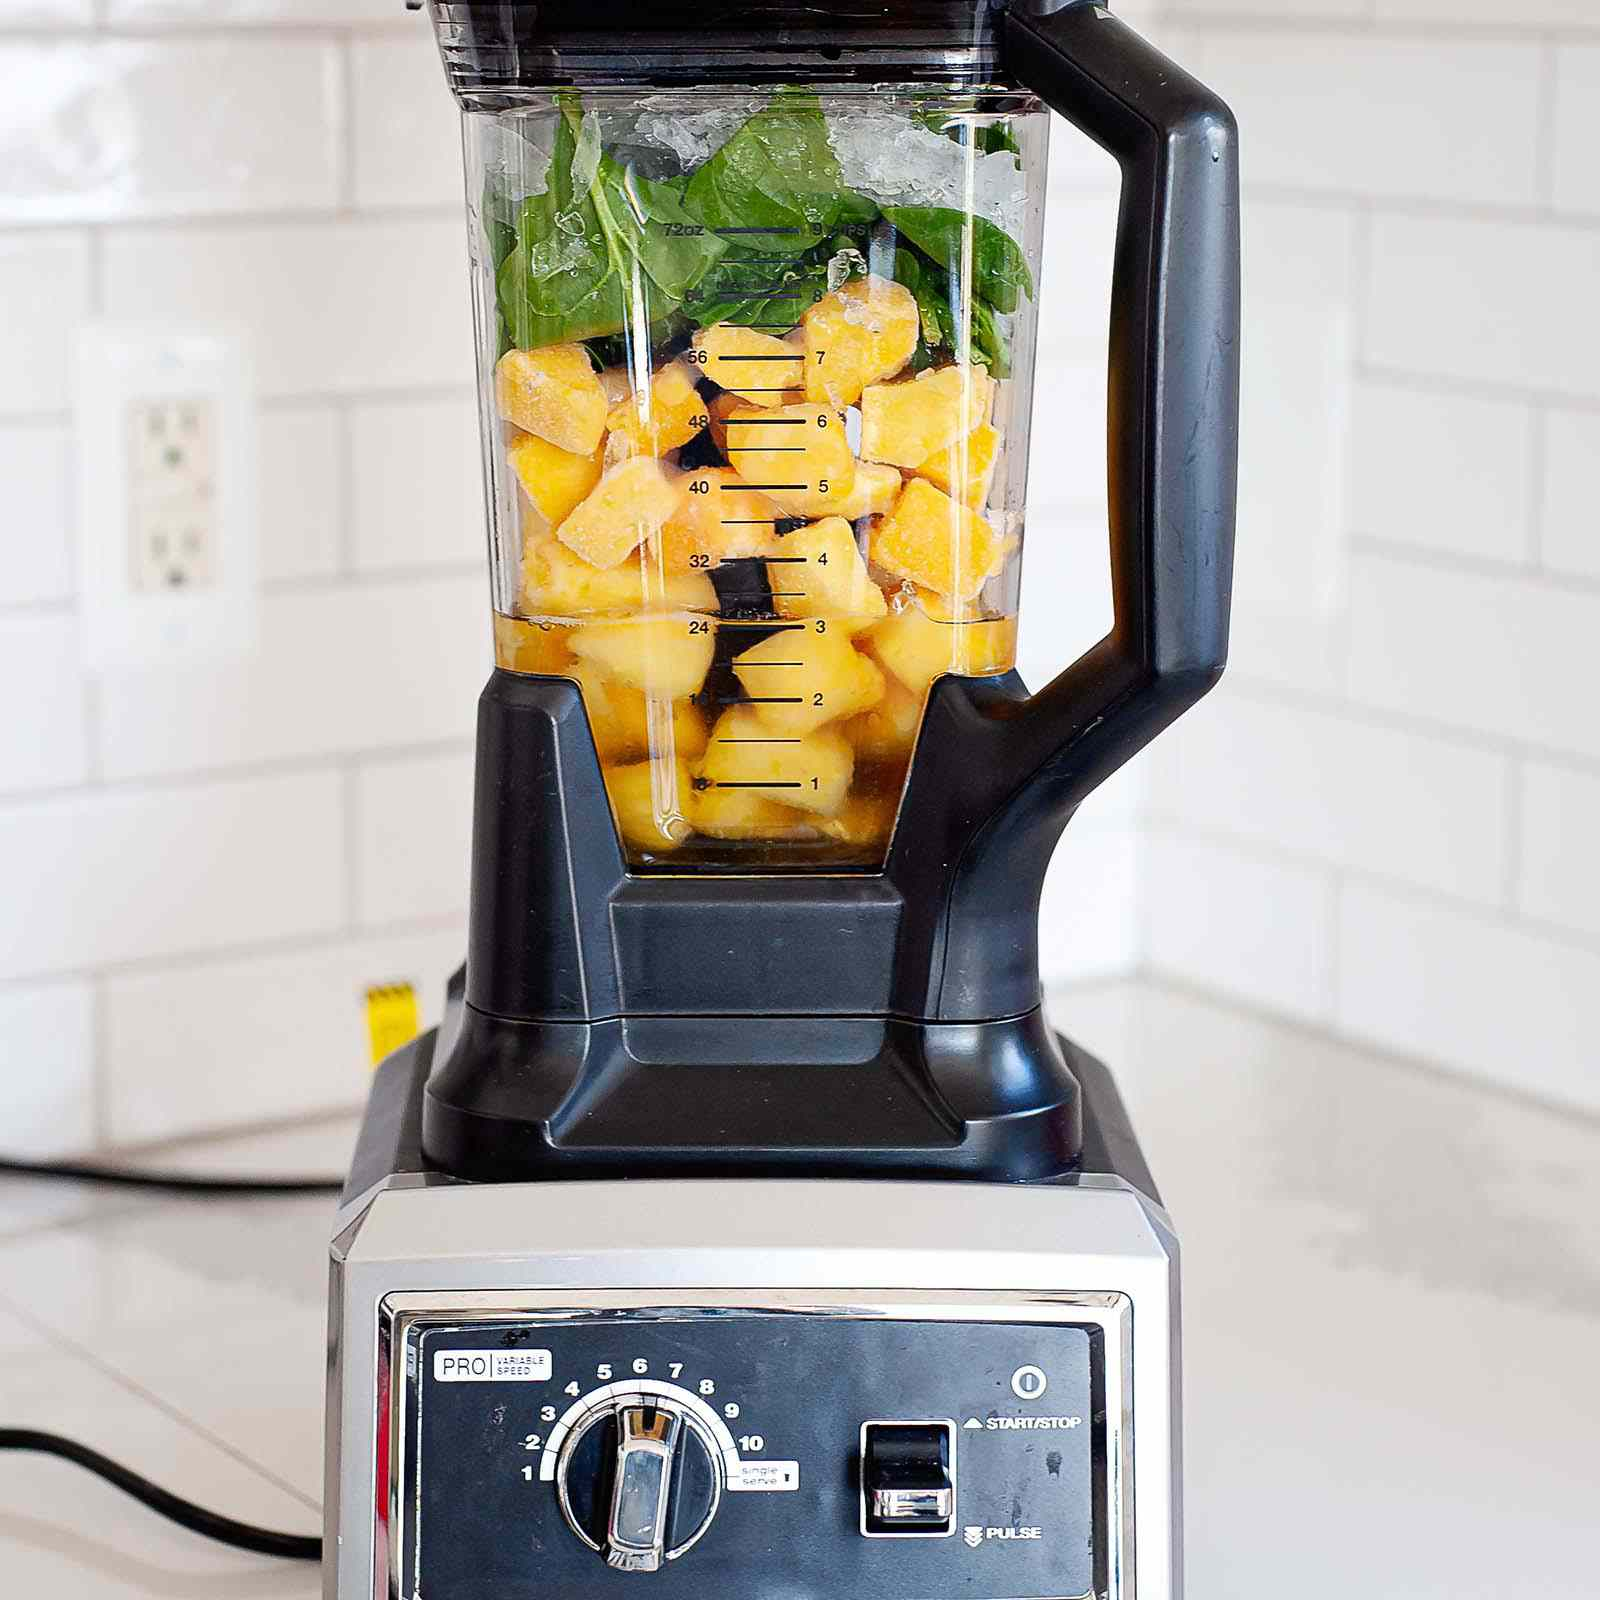 View of a high speed blender with pineapple and spinach inside. The blender sits on a white counter with subway tiled backsplash behind it.